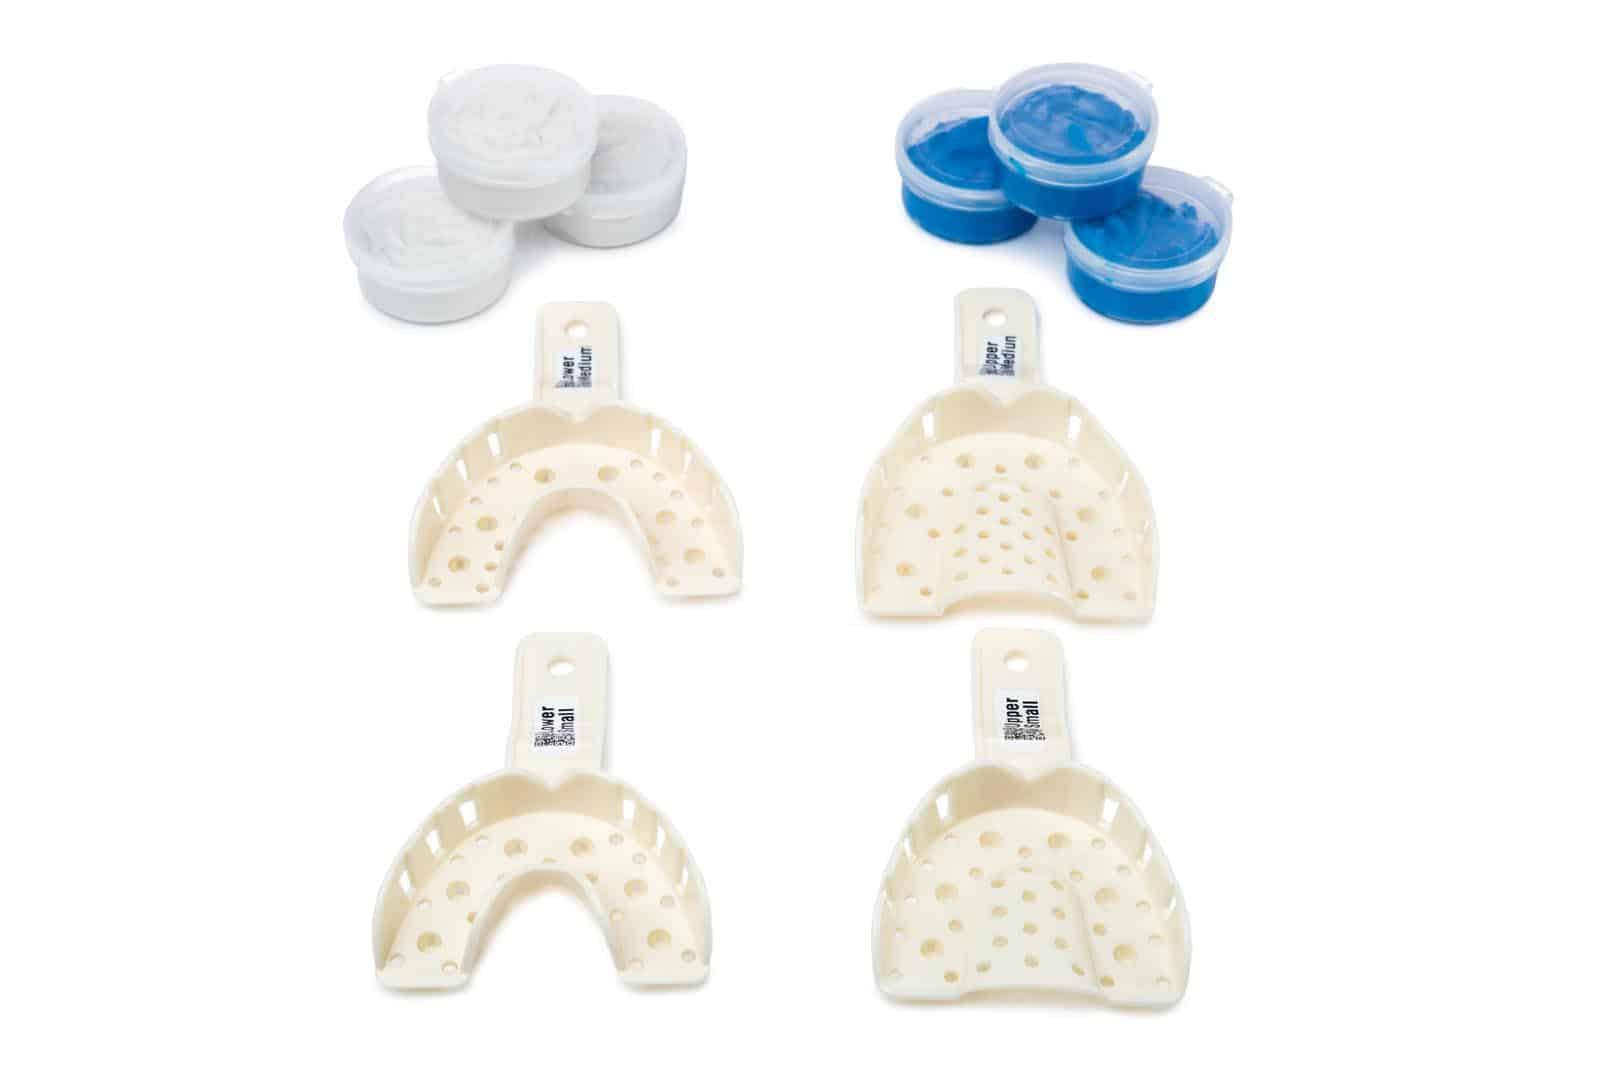 Snoreeze LabFit Oral Device: For the treatment of loud snoring and mild obstructive sleep apnoea Snoreeze